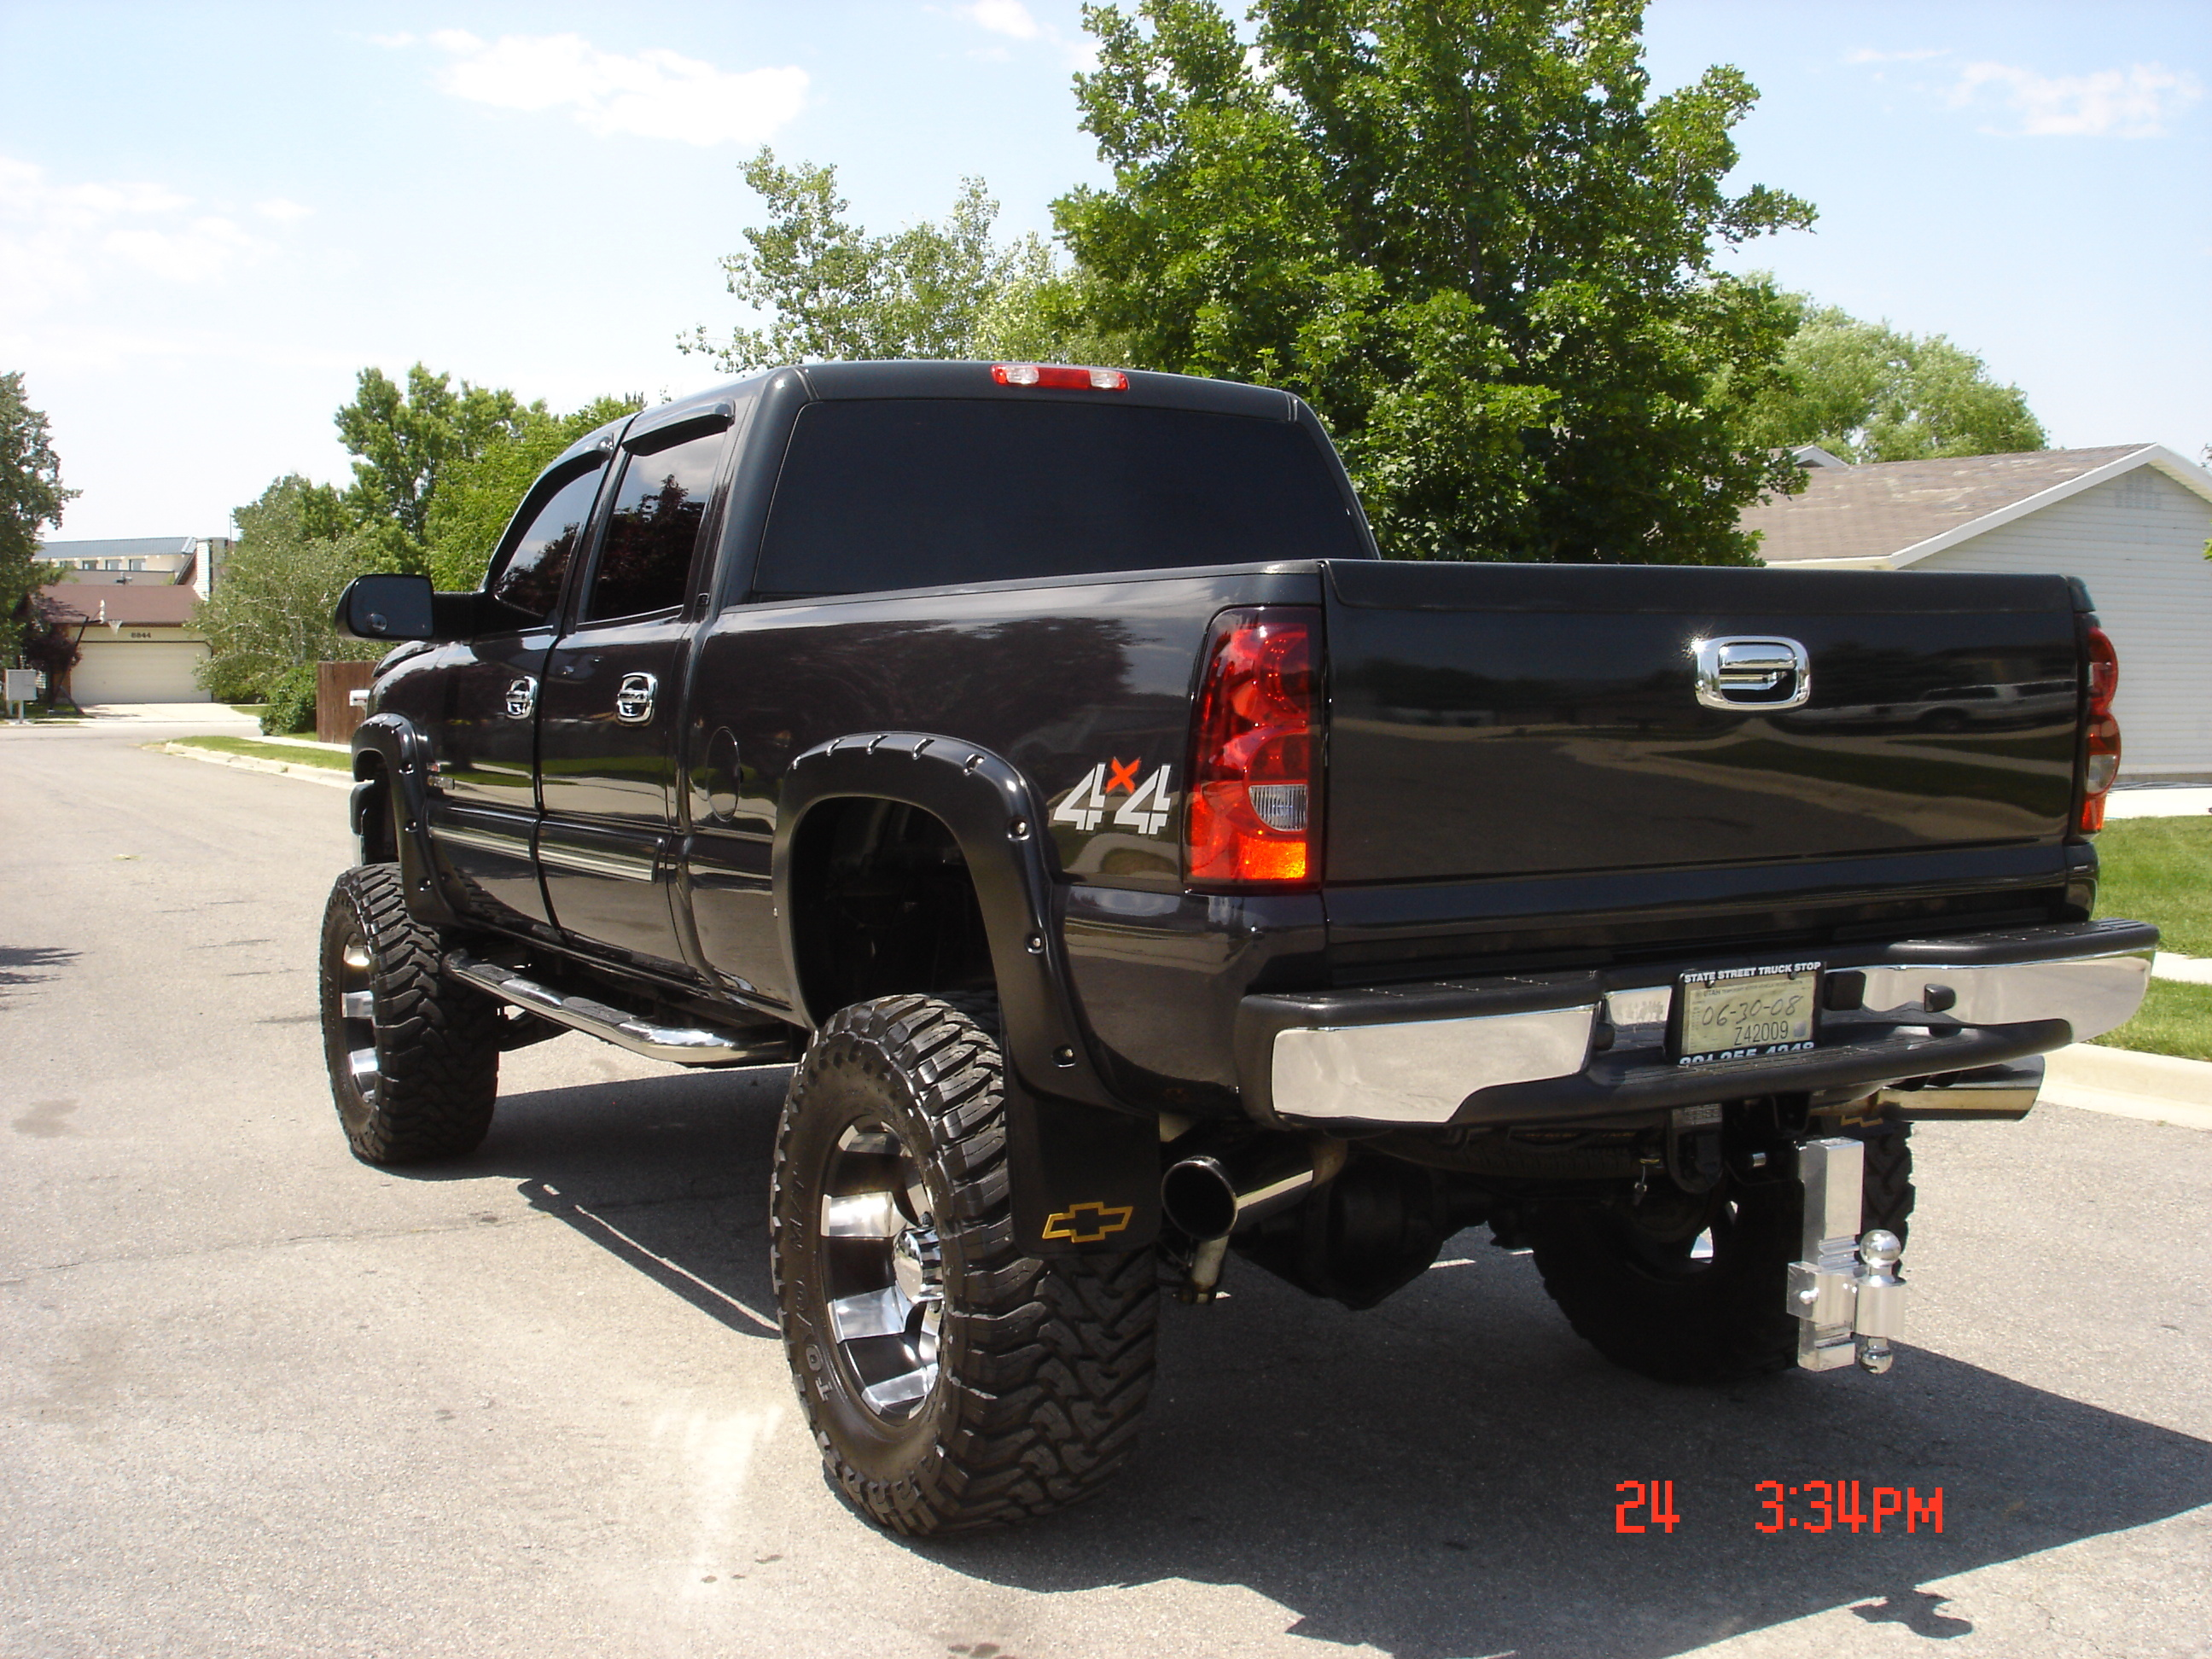 kuddyshack 2005 chevrolet silverado 2500 hd crew cab specs photos modification info at cardomain. Black Bedroom Furniture Sets. Home Design Ideas